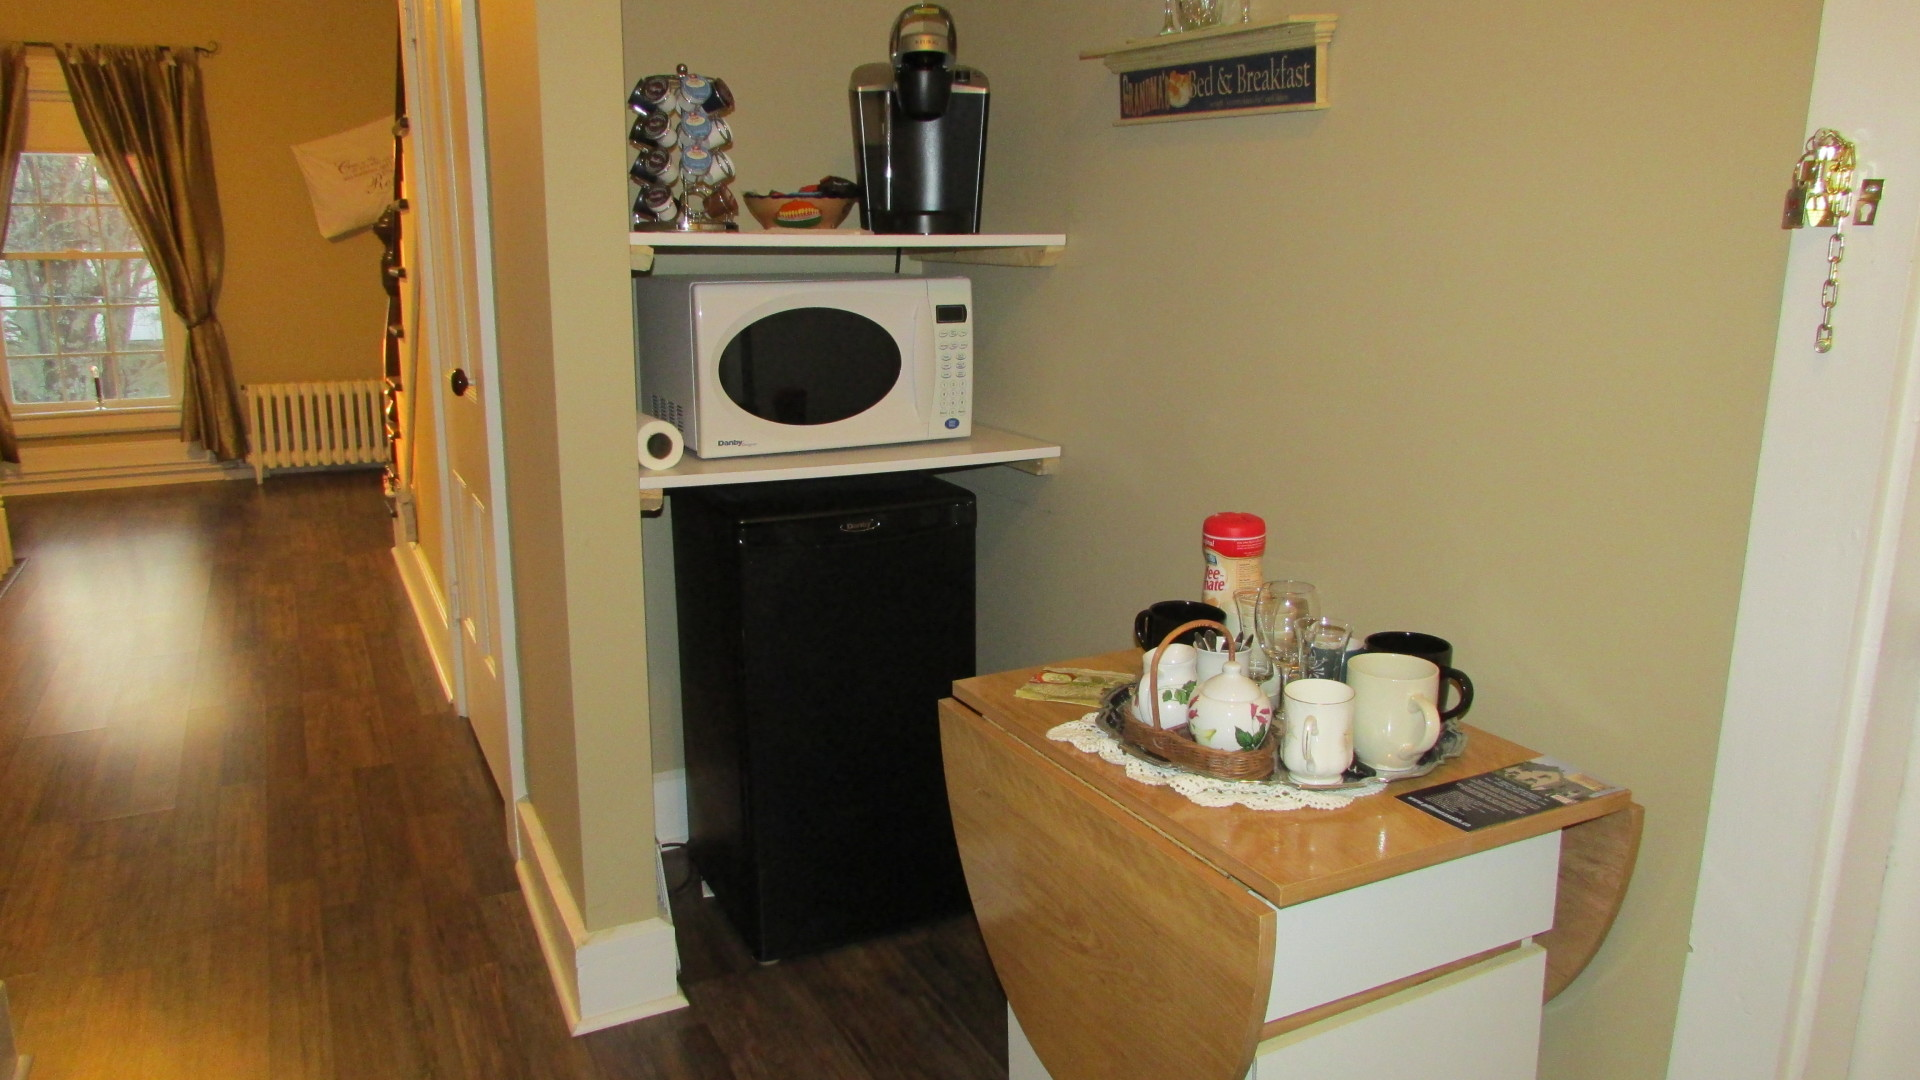 coffee tea fridge microwave